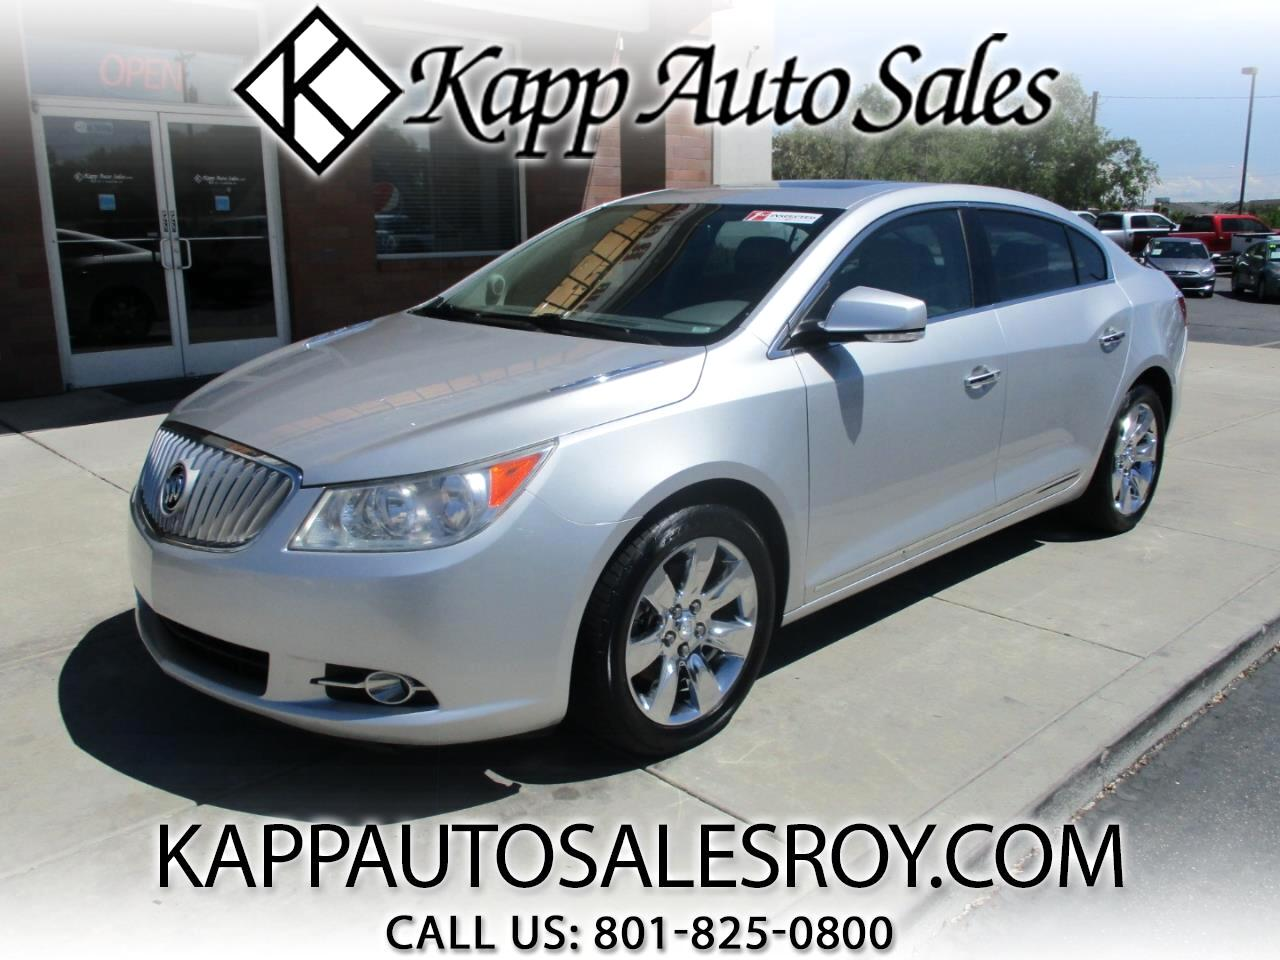 2010 Buick LaCrosse 4dr Sdn CXL AWD